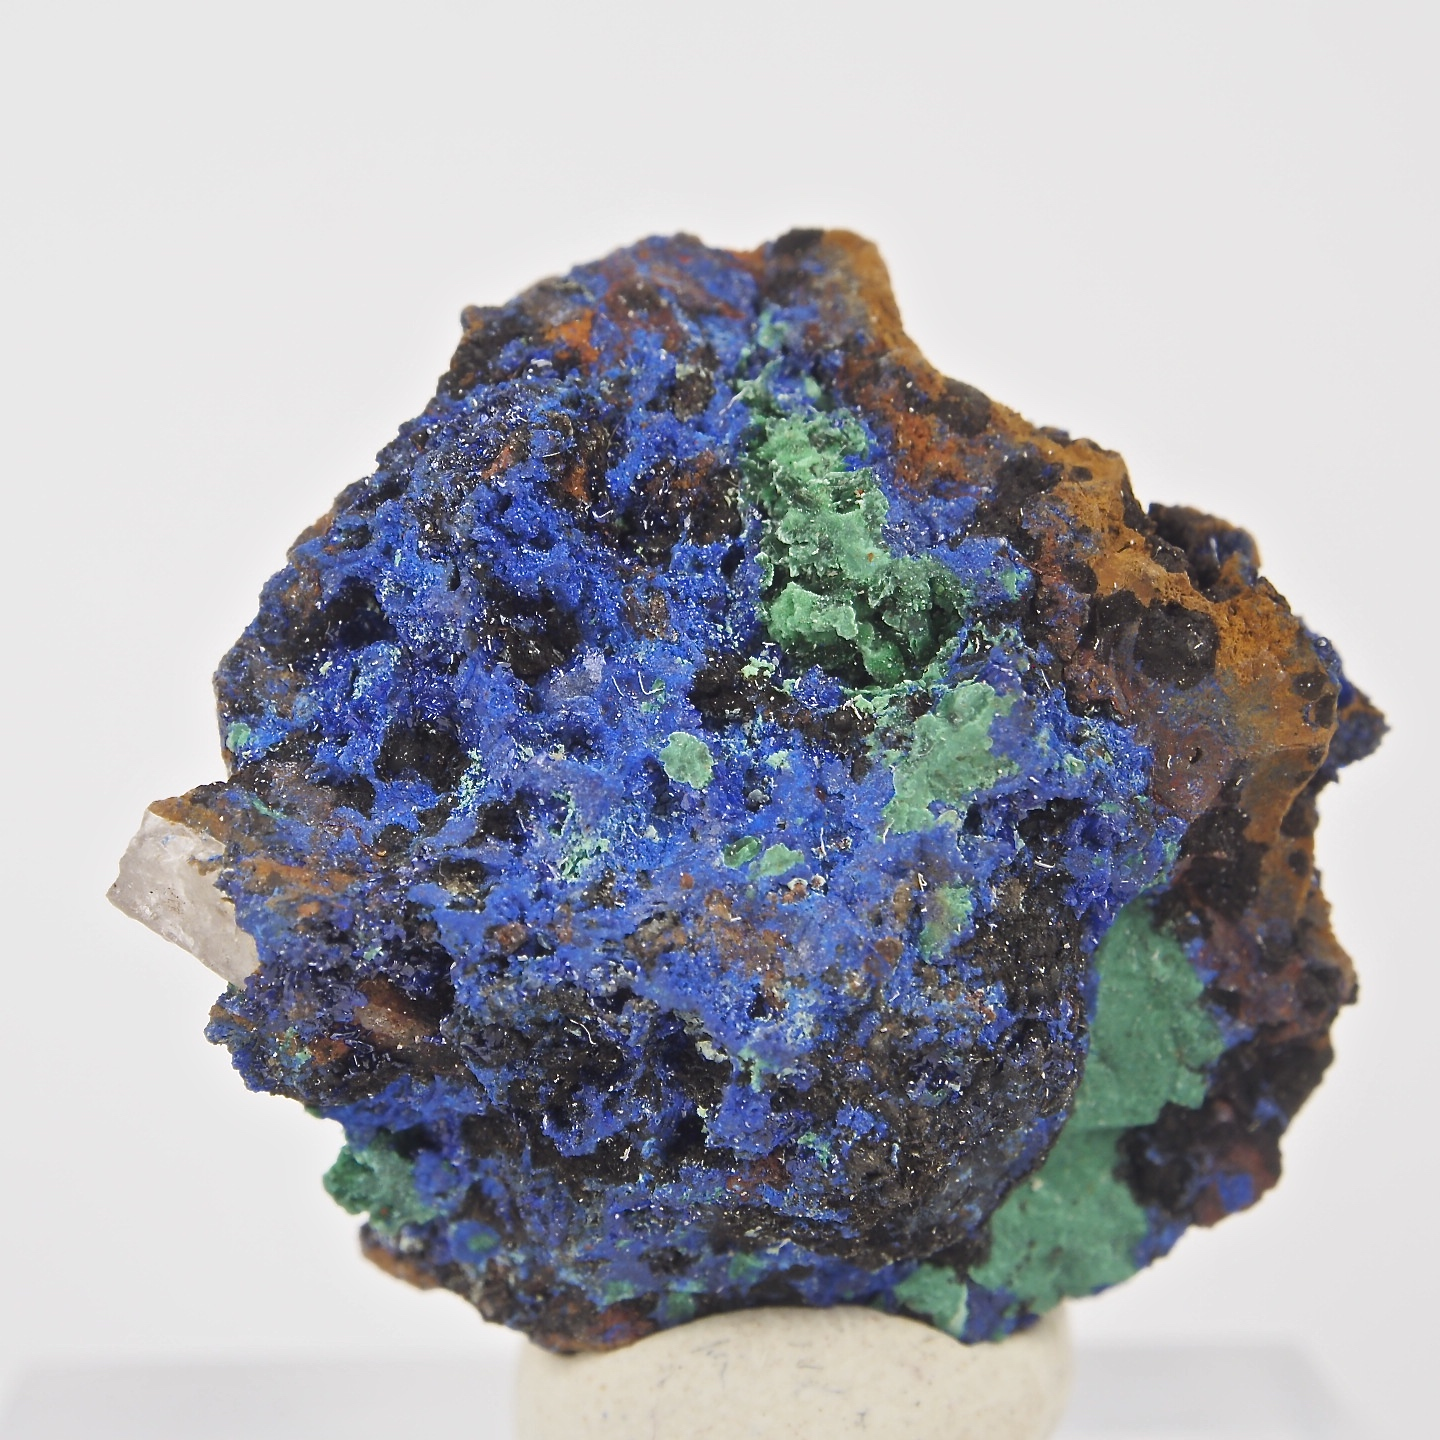 Azurite Mineral with Malachite and Quartz Crystals from ...